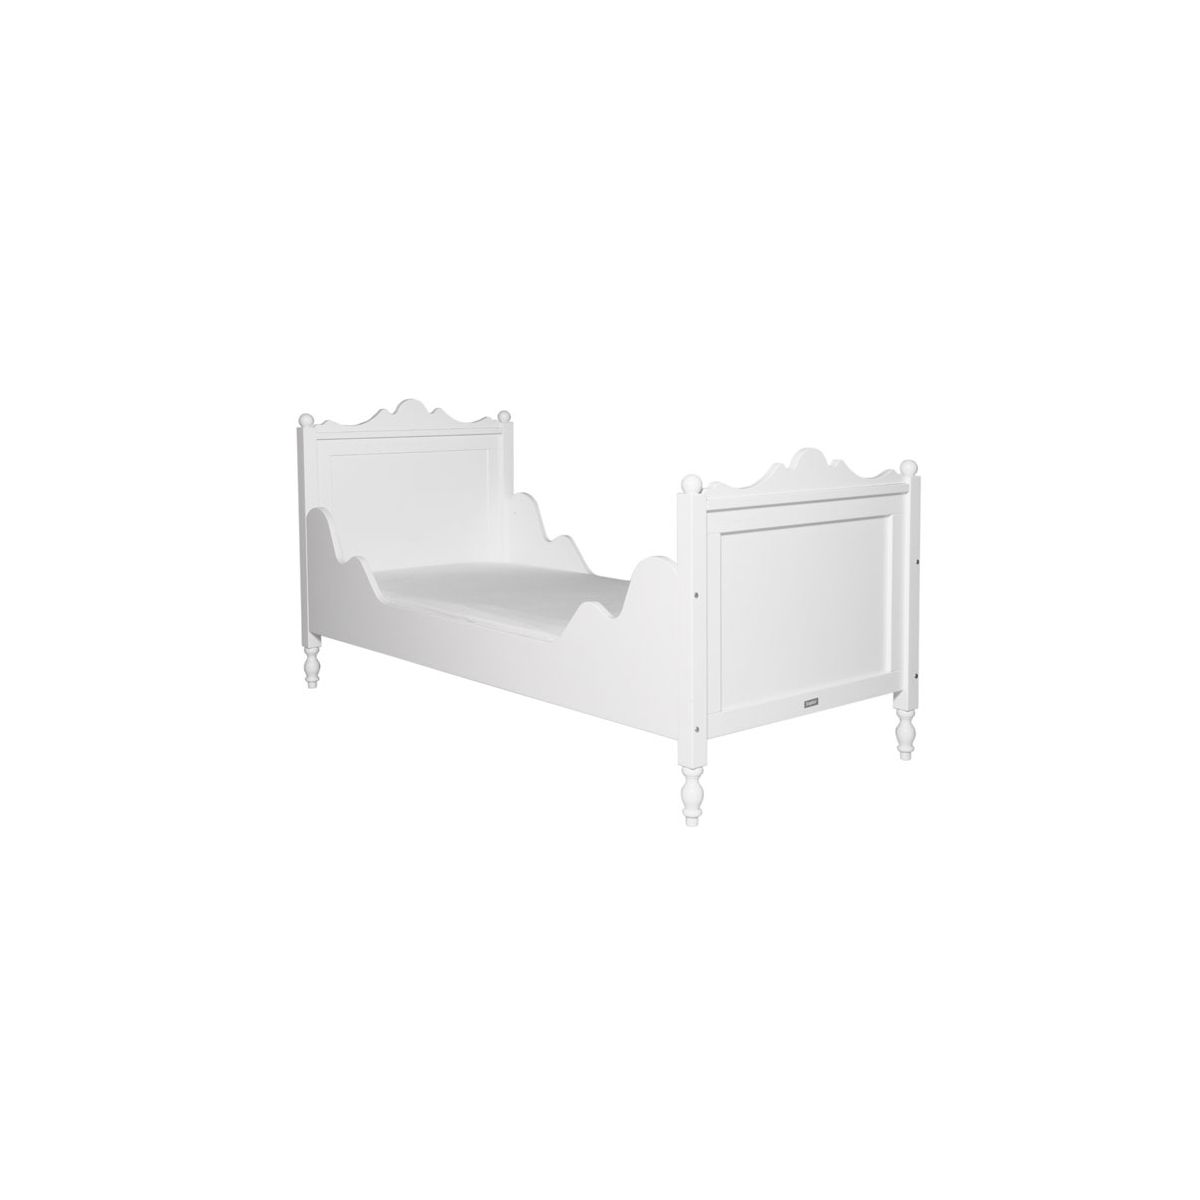 Full Size of Bett 90x200 Bopita Belle Cm Boxspring Betten Meise Mit Schubladen Mannheim Bettkasten 180x200 Metall Köln Schlicht Clinique Even Better Make Up Mädchen Bett Bett 90x200